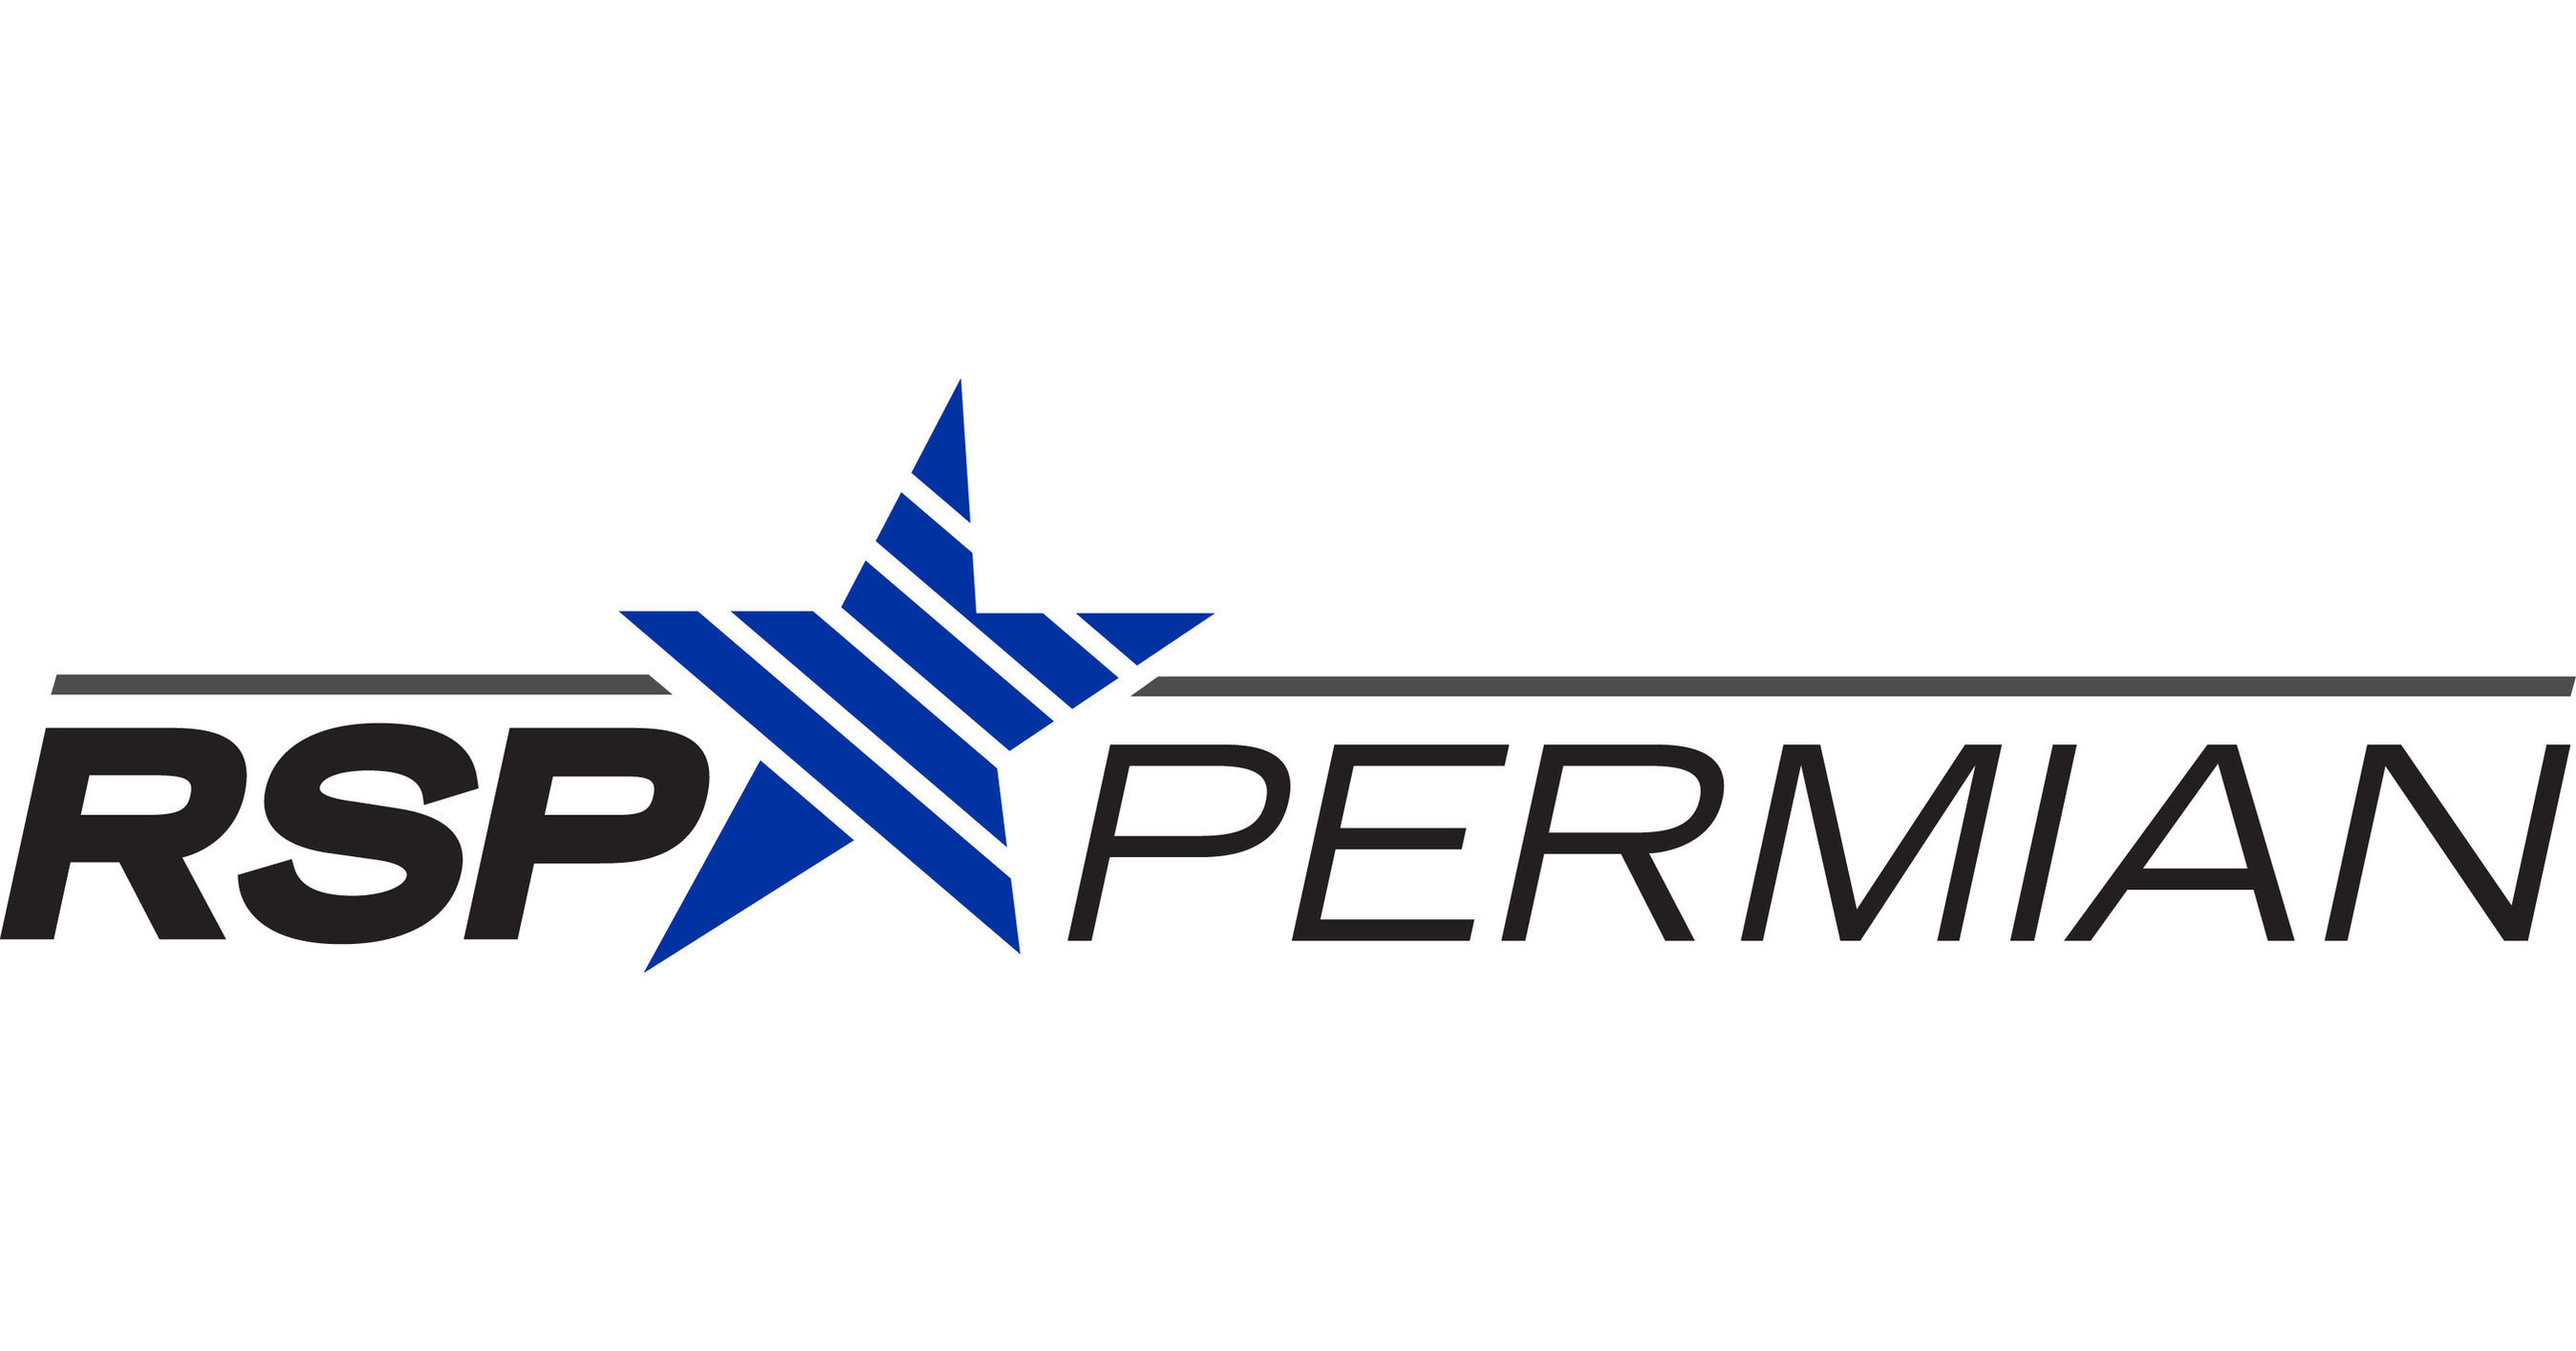 Rsp permian inc announces timing of third quarter 2017 financial and operational results and